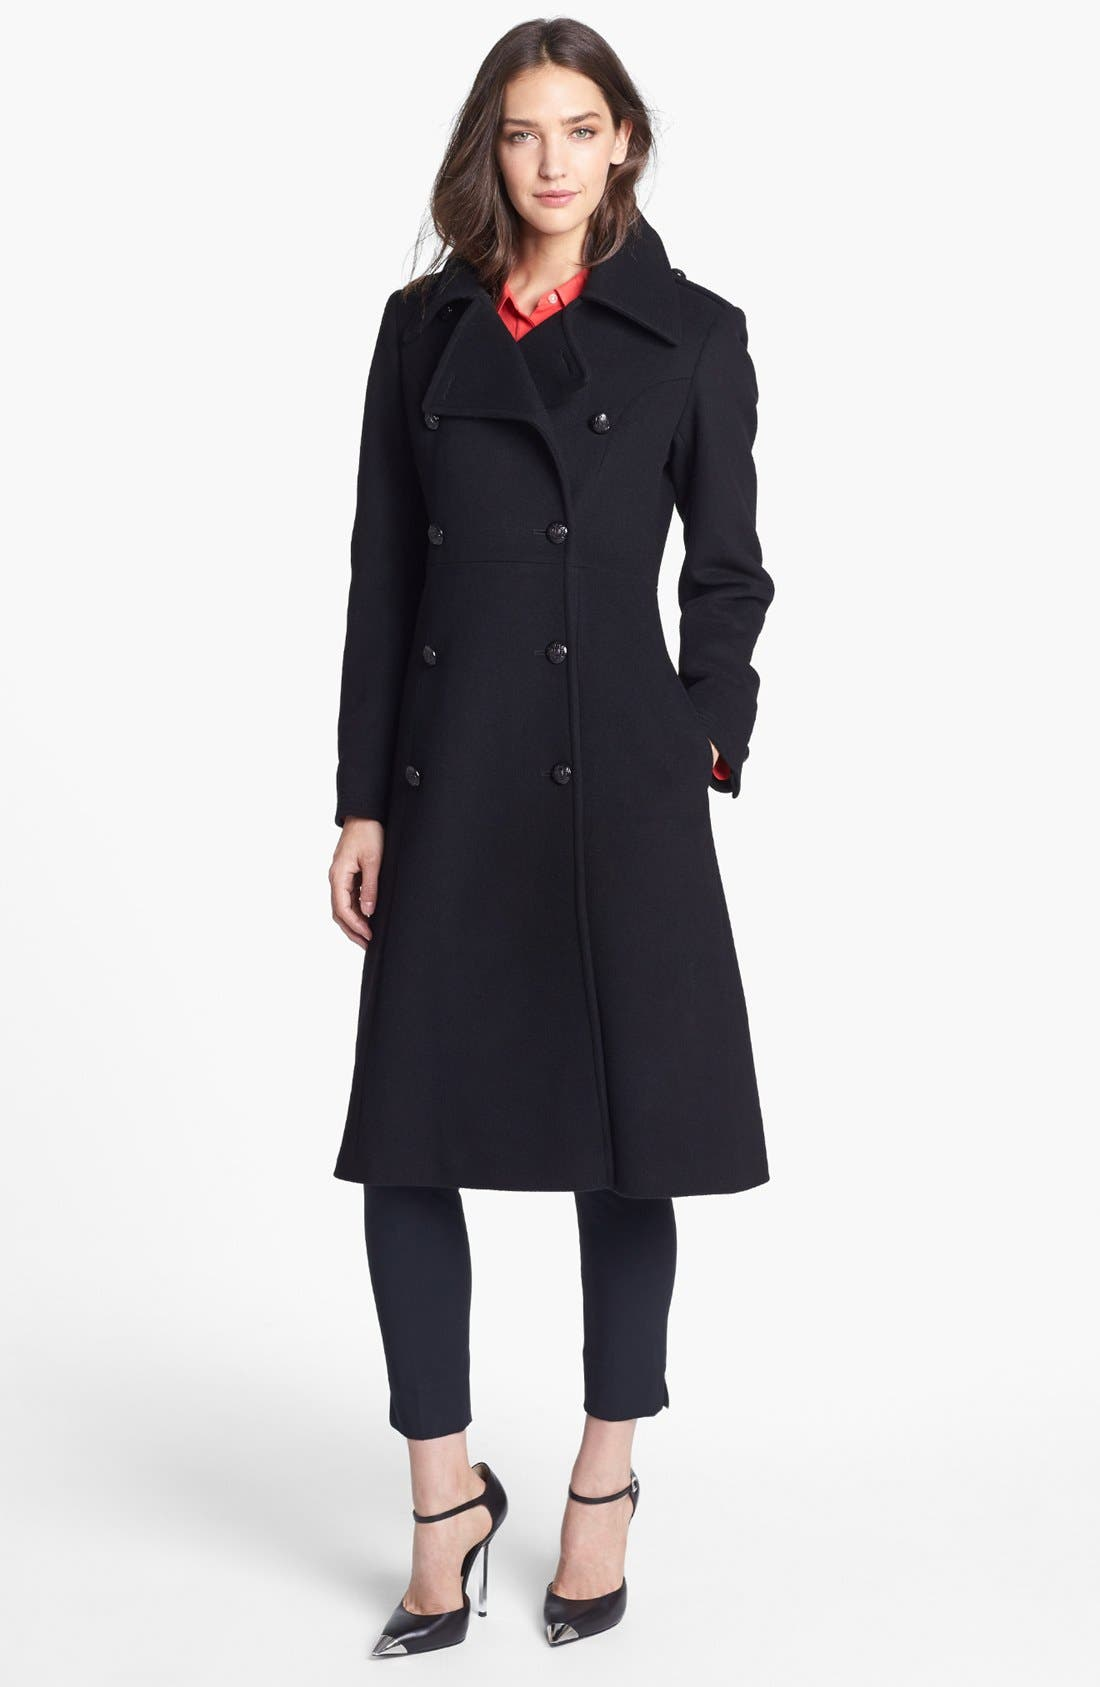 Main Image - French Connection Fit & Flare Wool Blend Coat